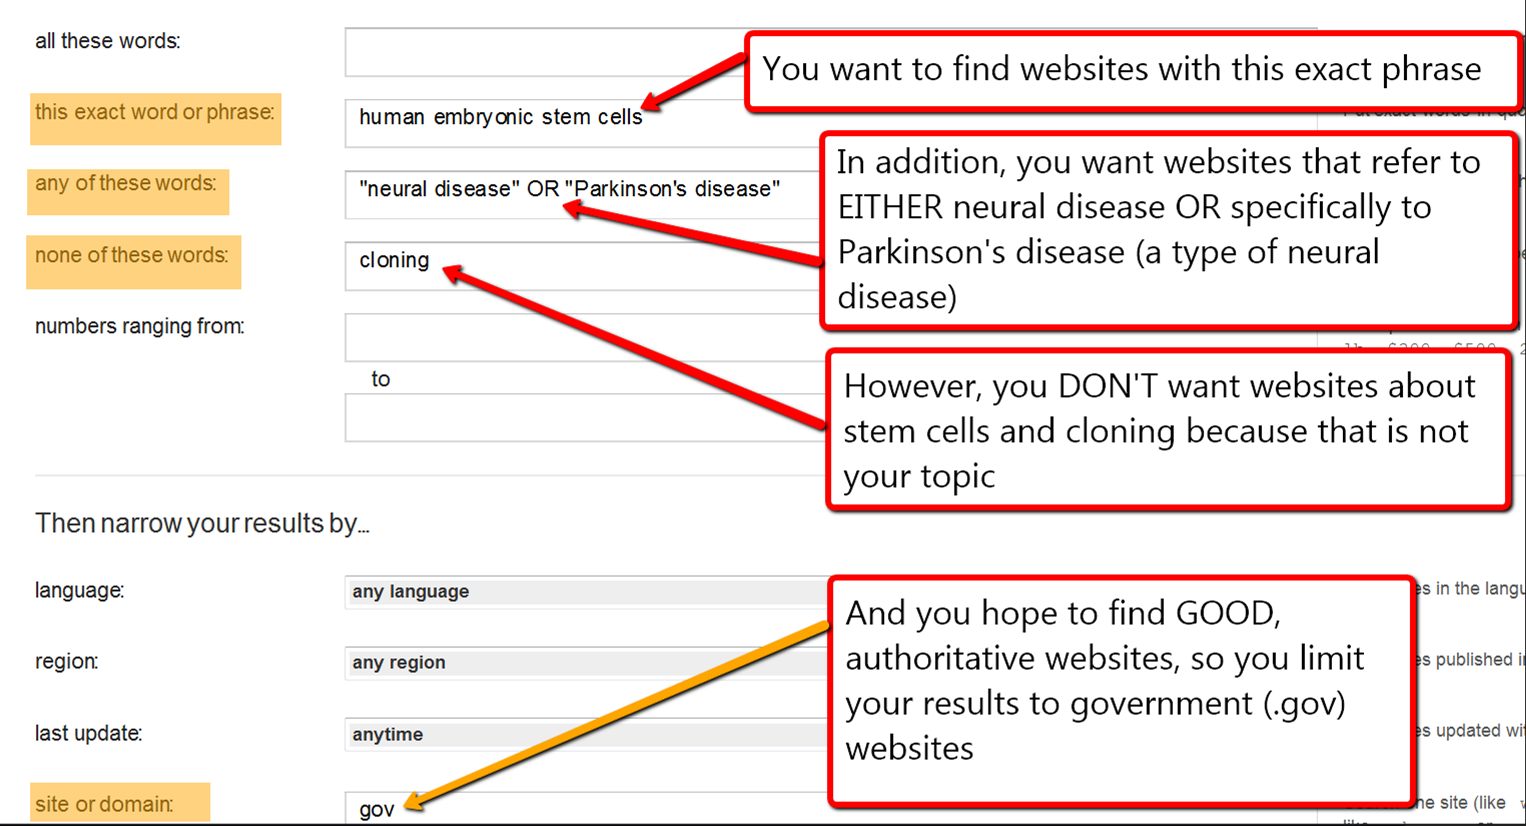 screenshot of the advanced search options in Google, as outlined in the text after the image